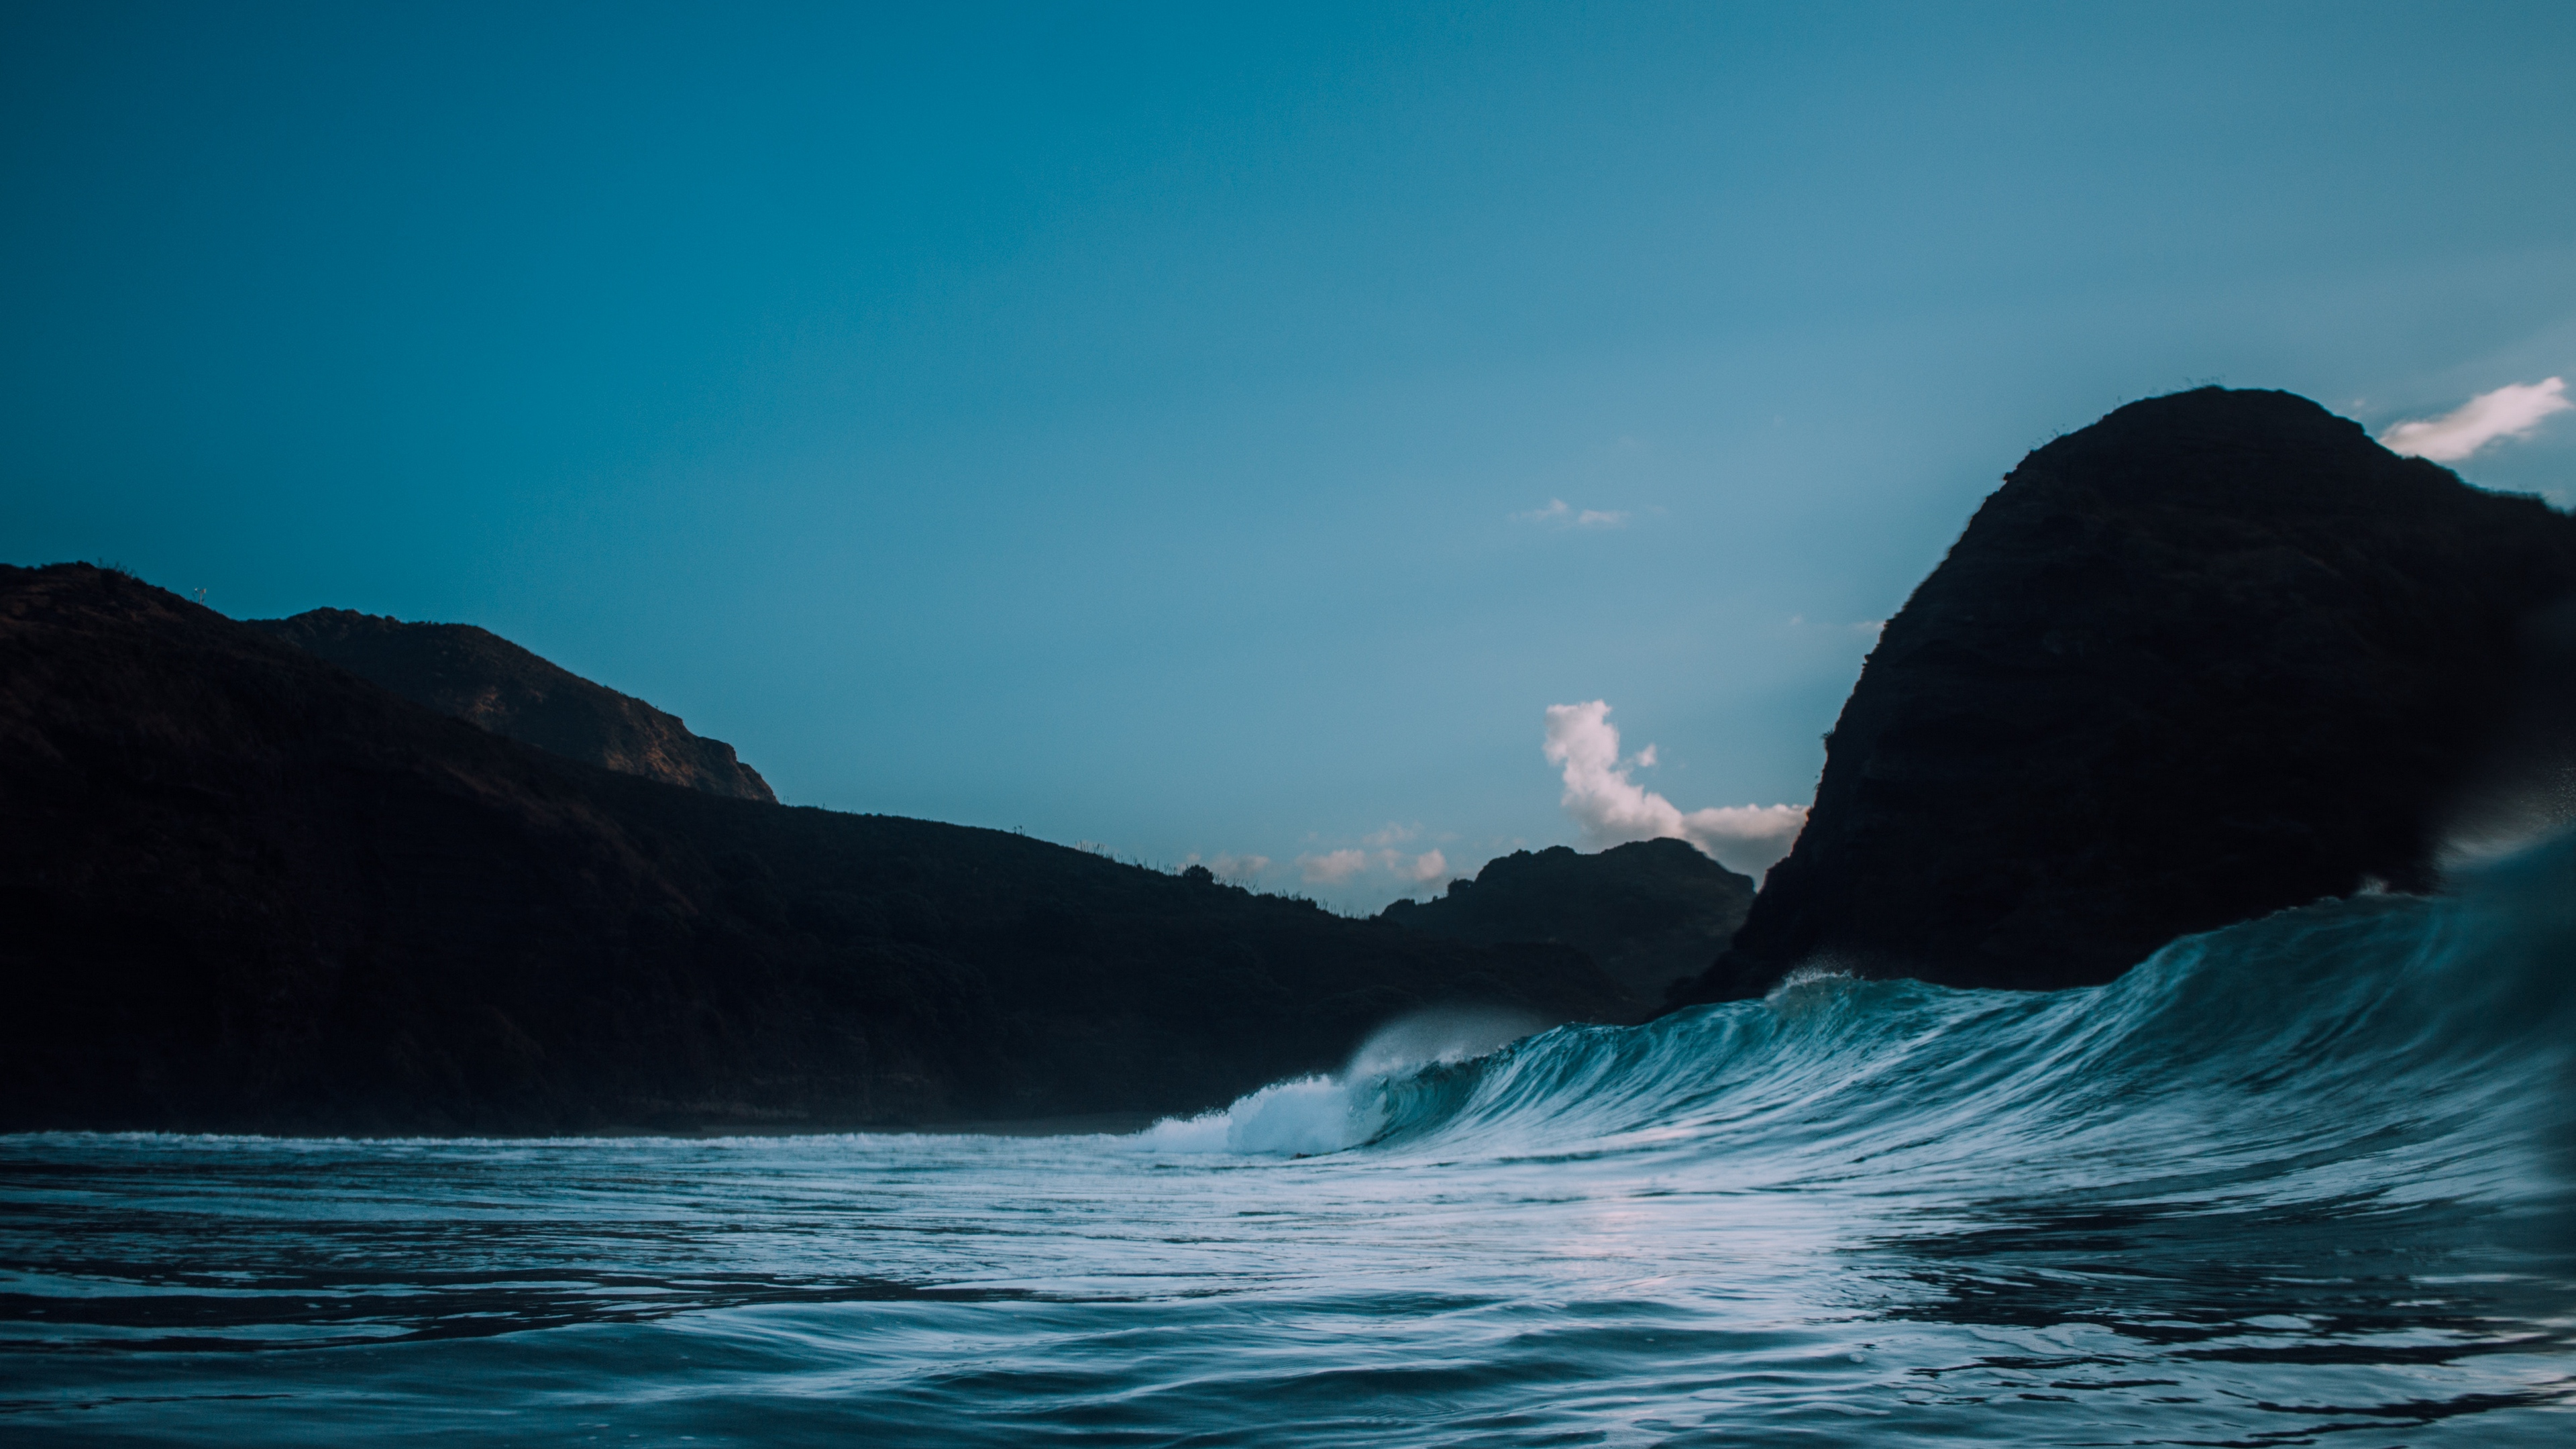 Wallpaper 4k Surf Sea Rock 4k Rock Sea Surf